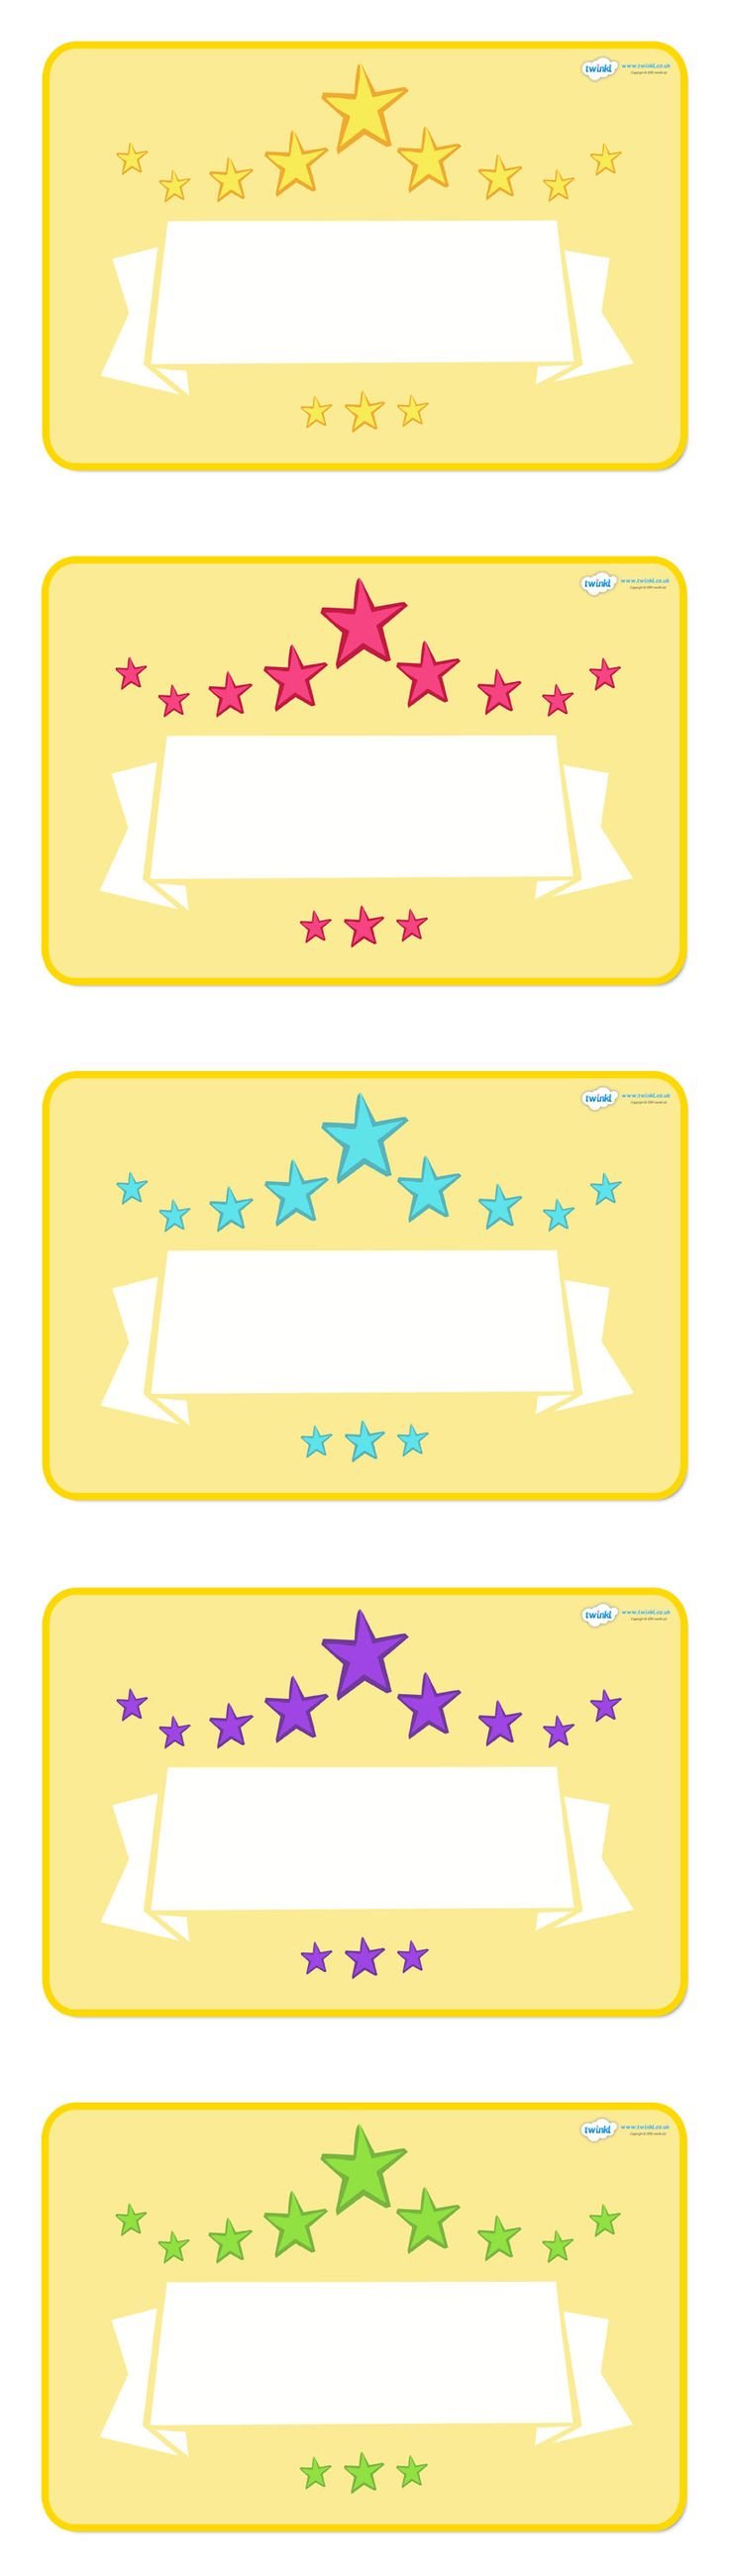 Twinkl Resources >> Editable Golden Rules Posters  >> Thousands of printable primary teaching resources for EYFS, KS1, KS2 and beyond! golden rules, rules, behaviour, classroom rules, behaviour management,